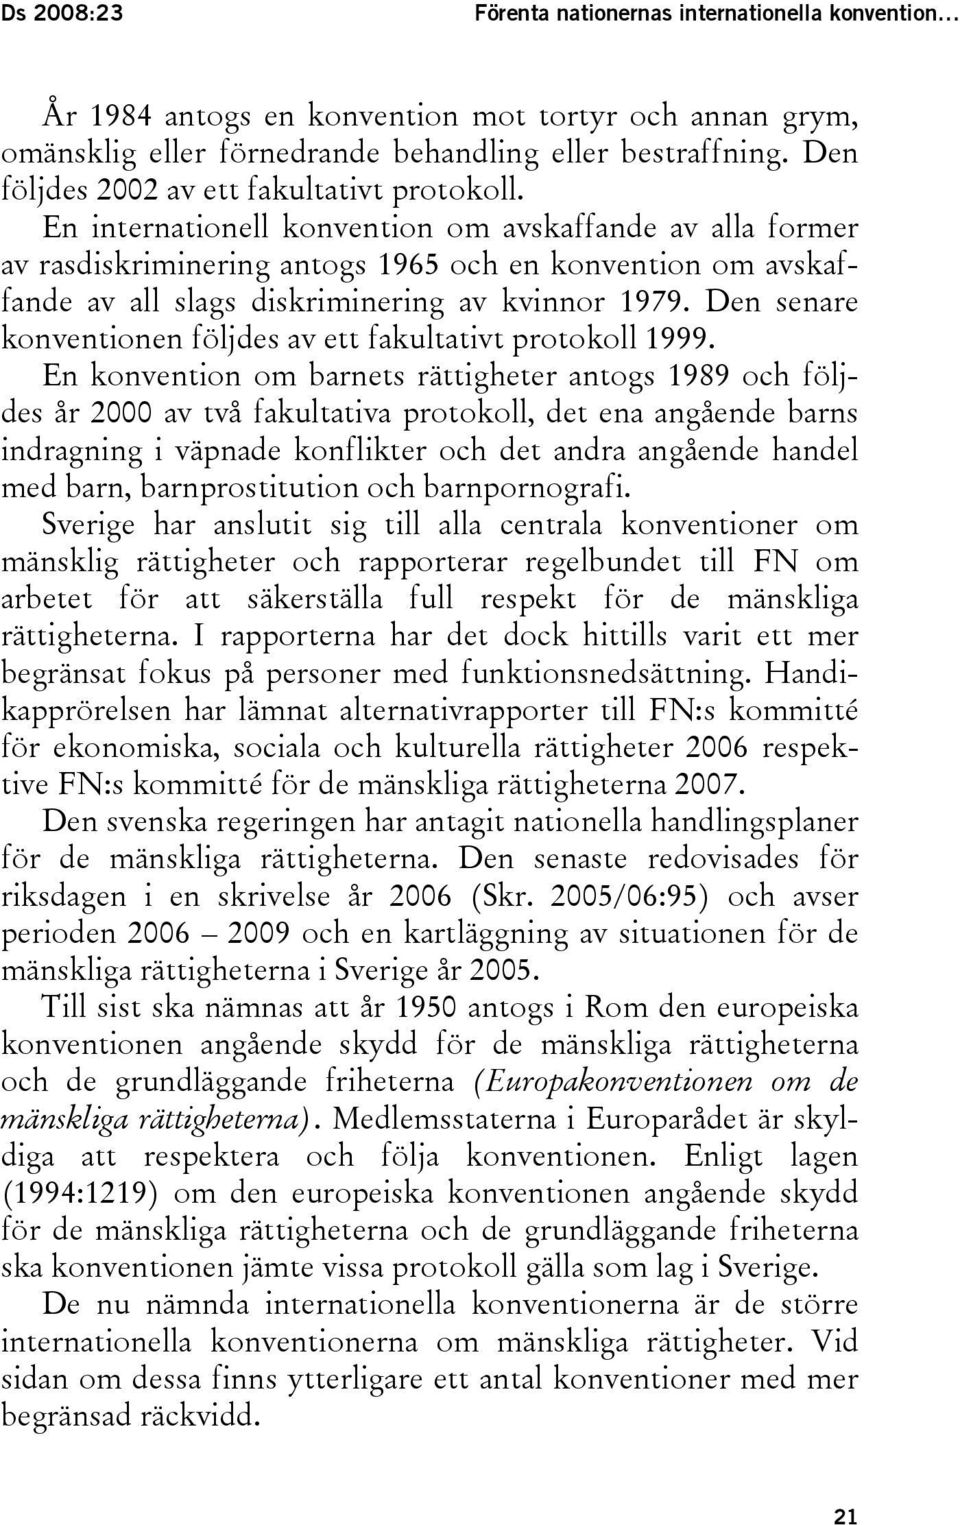 En internationell konvention om avskaffande av alla former av rasdiskriminering antogs 1965 och en konvention om avskaffande av all slags diskriminering av kvinnor 1979.